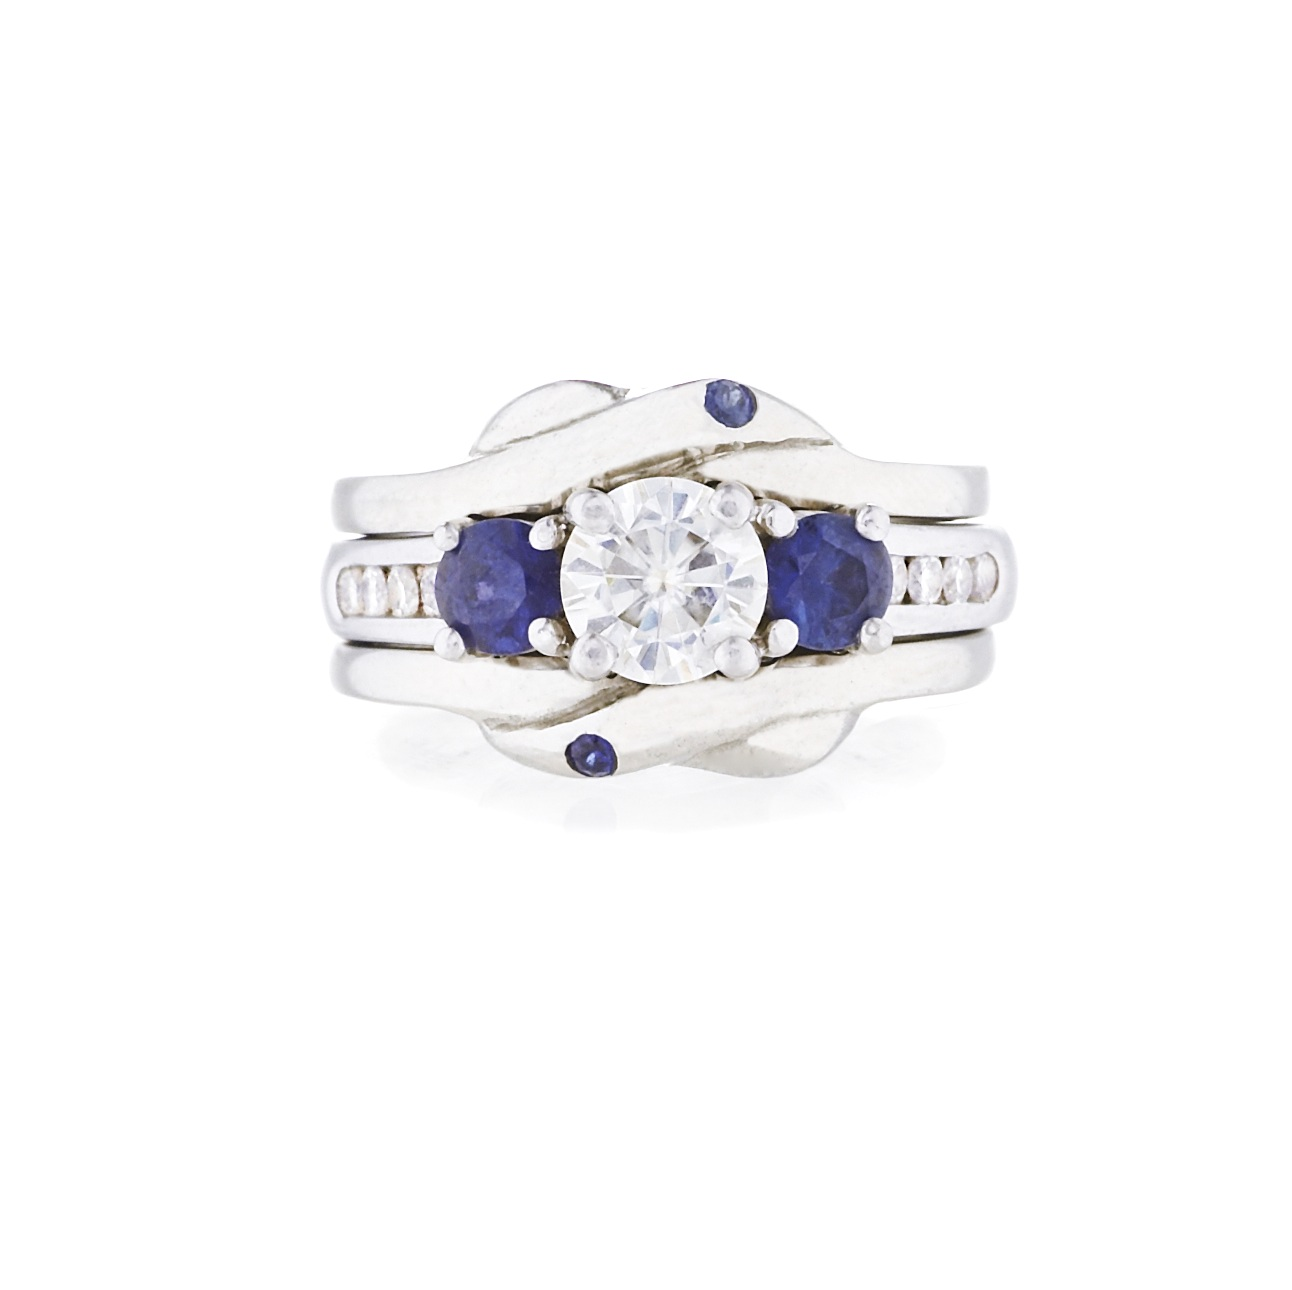 Tara's Custom Stacking White Gold Wedding Bands with Sapphires - 2010